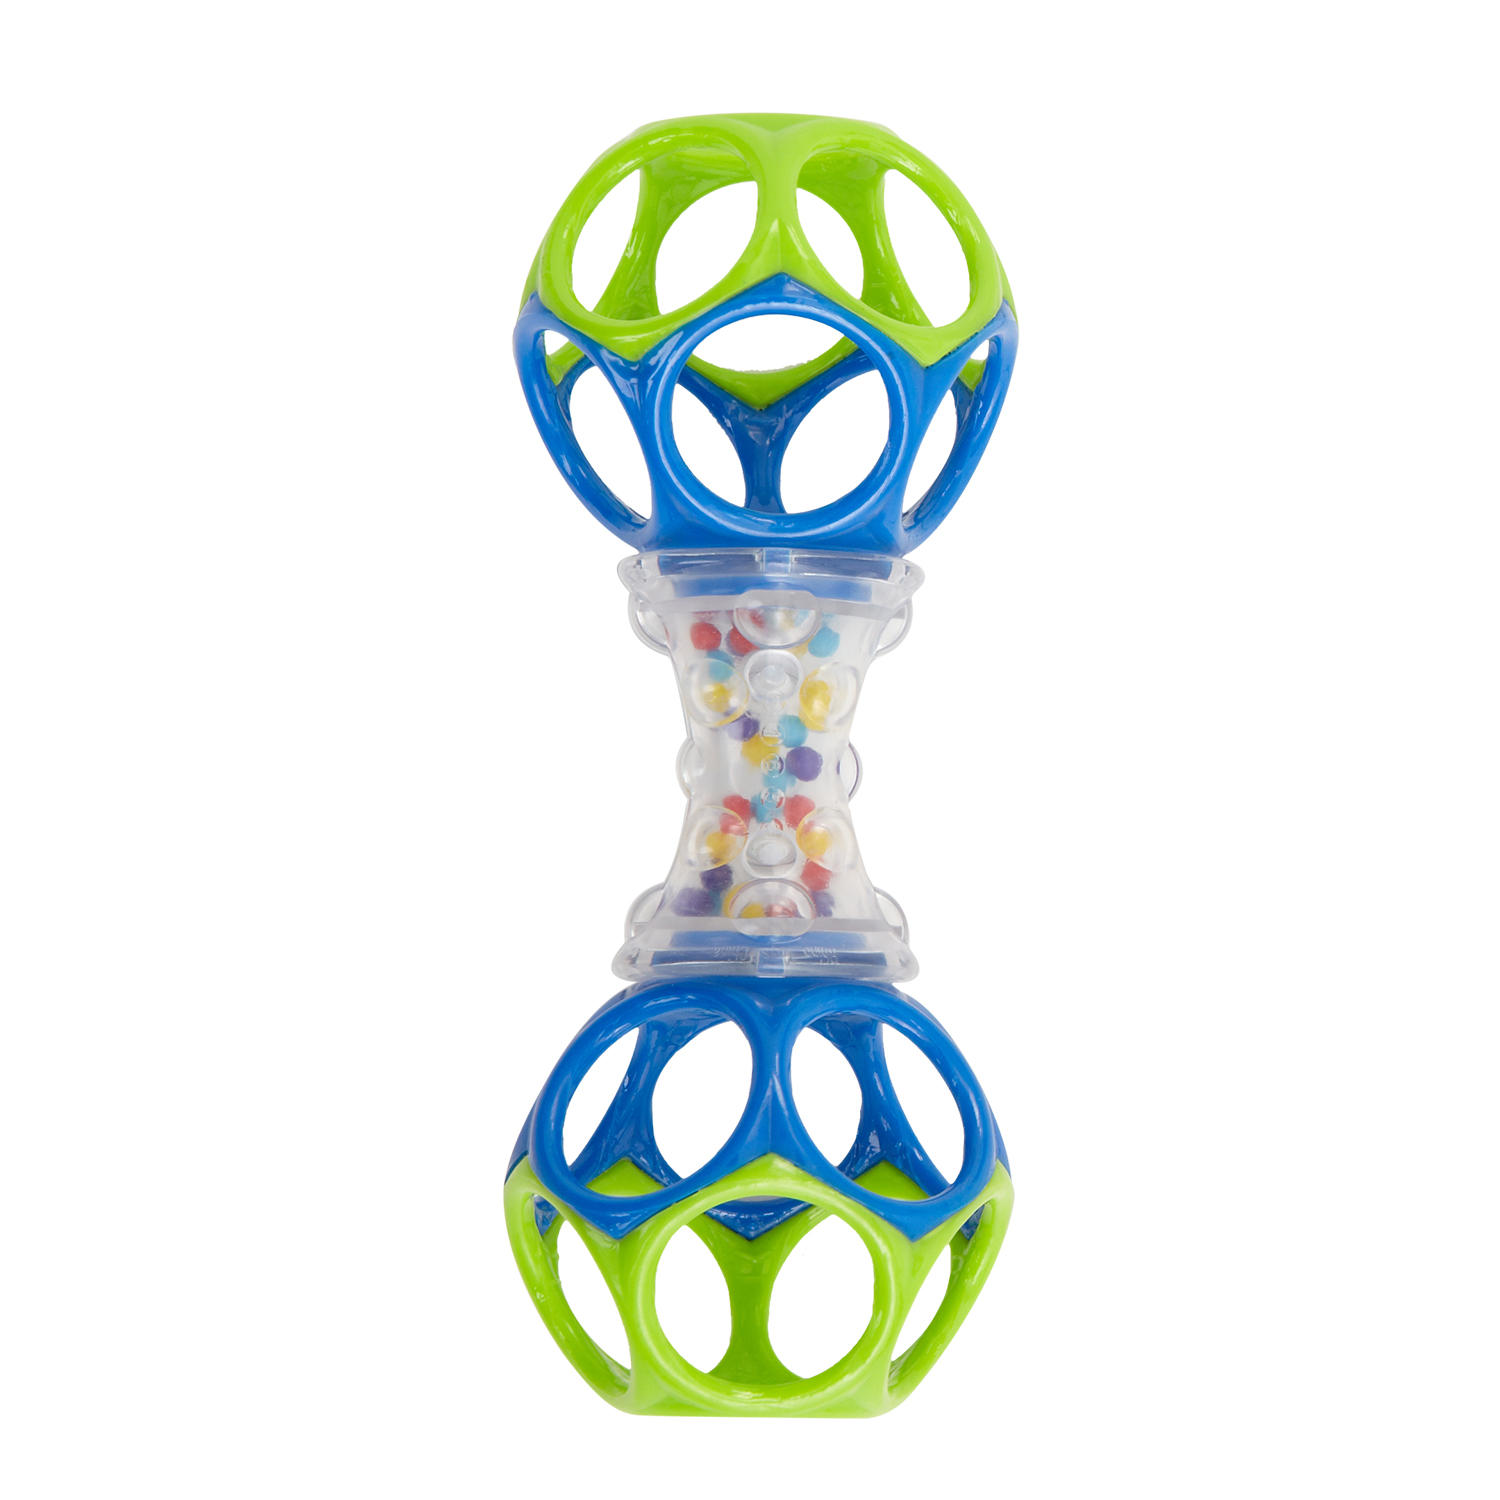 Oball Shaker Toy